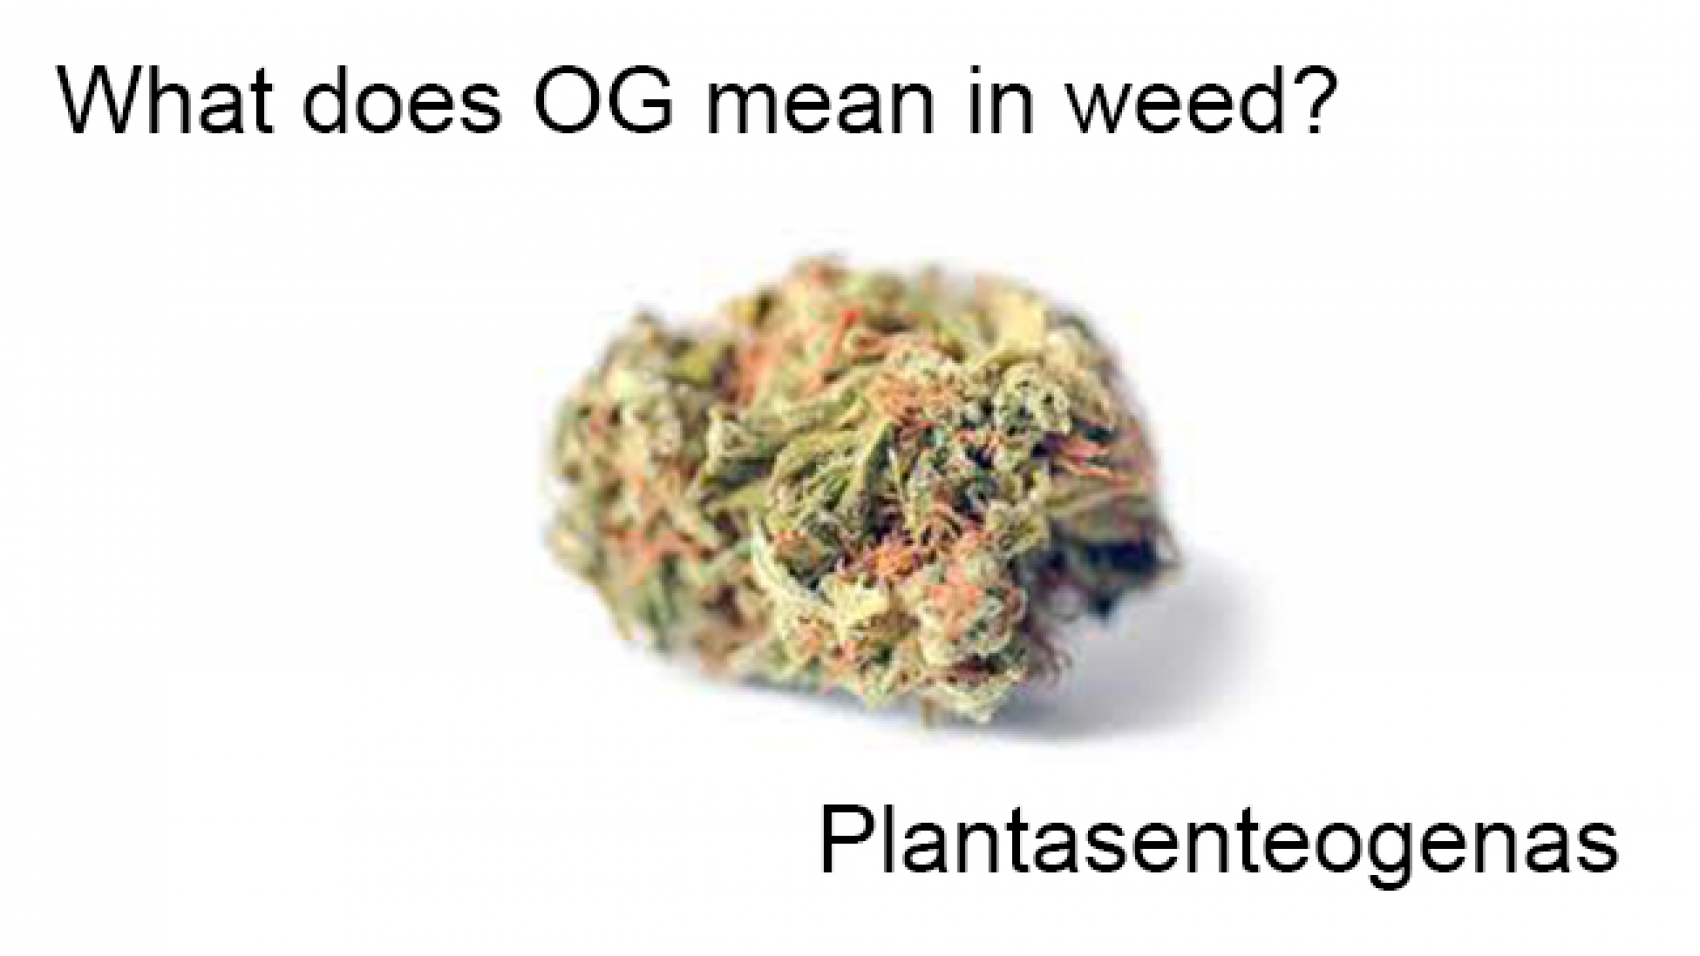 What does OG mean in weed